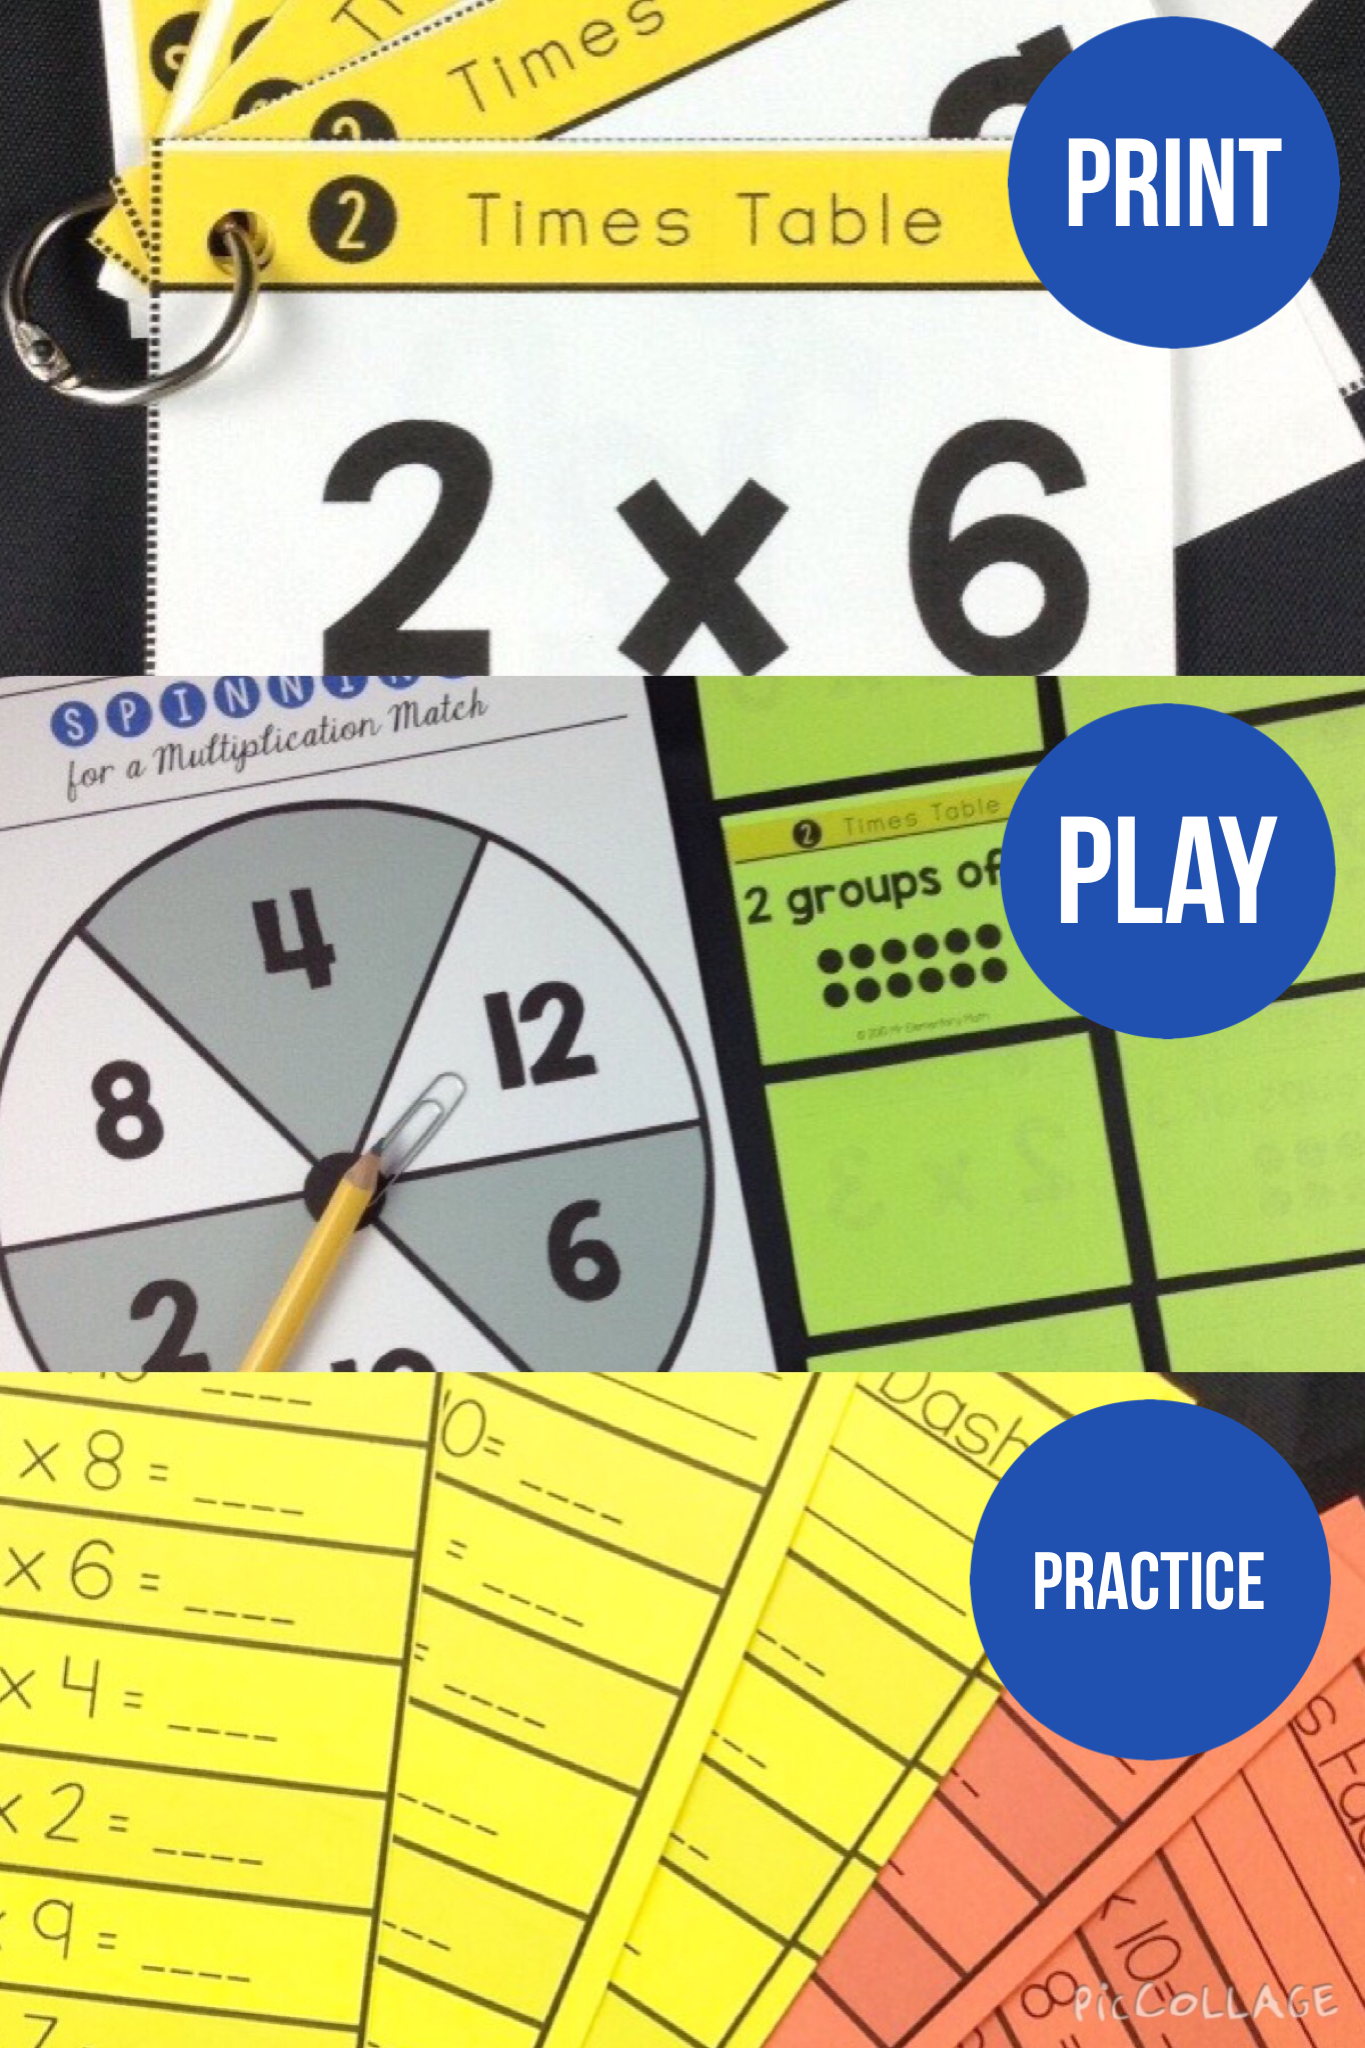 Multiplication facts 2 times table study cards multiplication are you looking for a fun way for students to learn and practice their multiplication facts gamestrikefo Choice Image